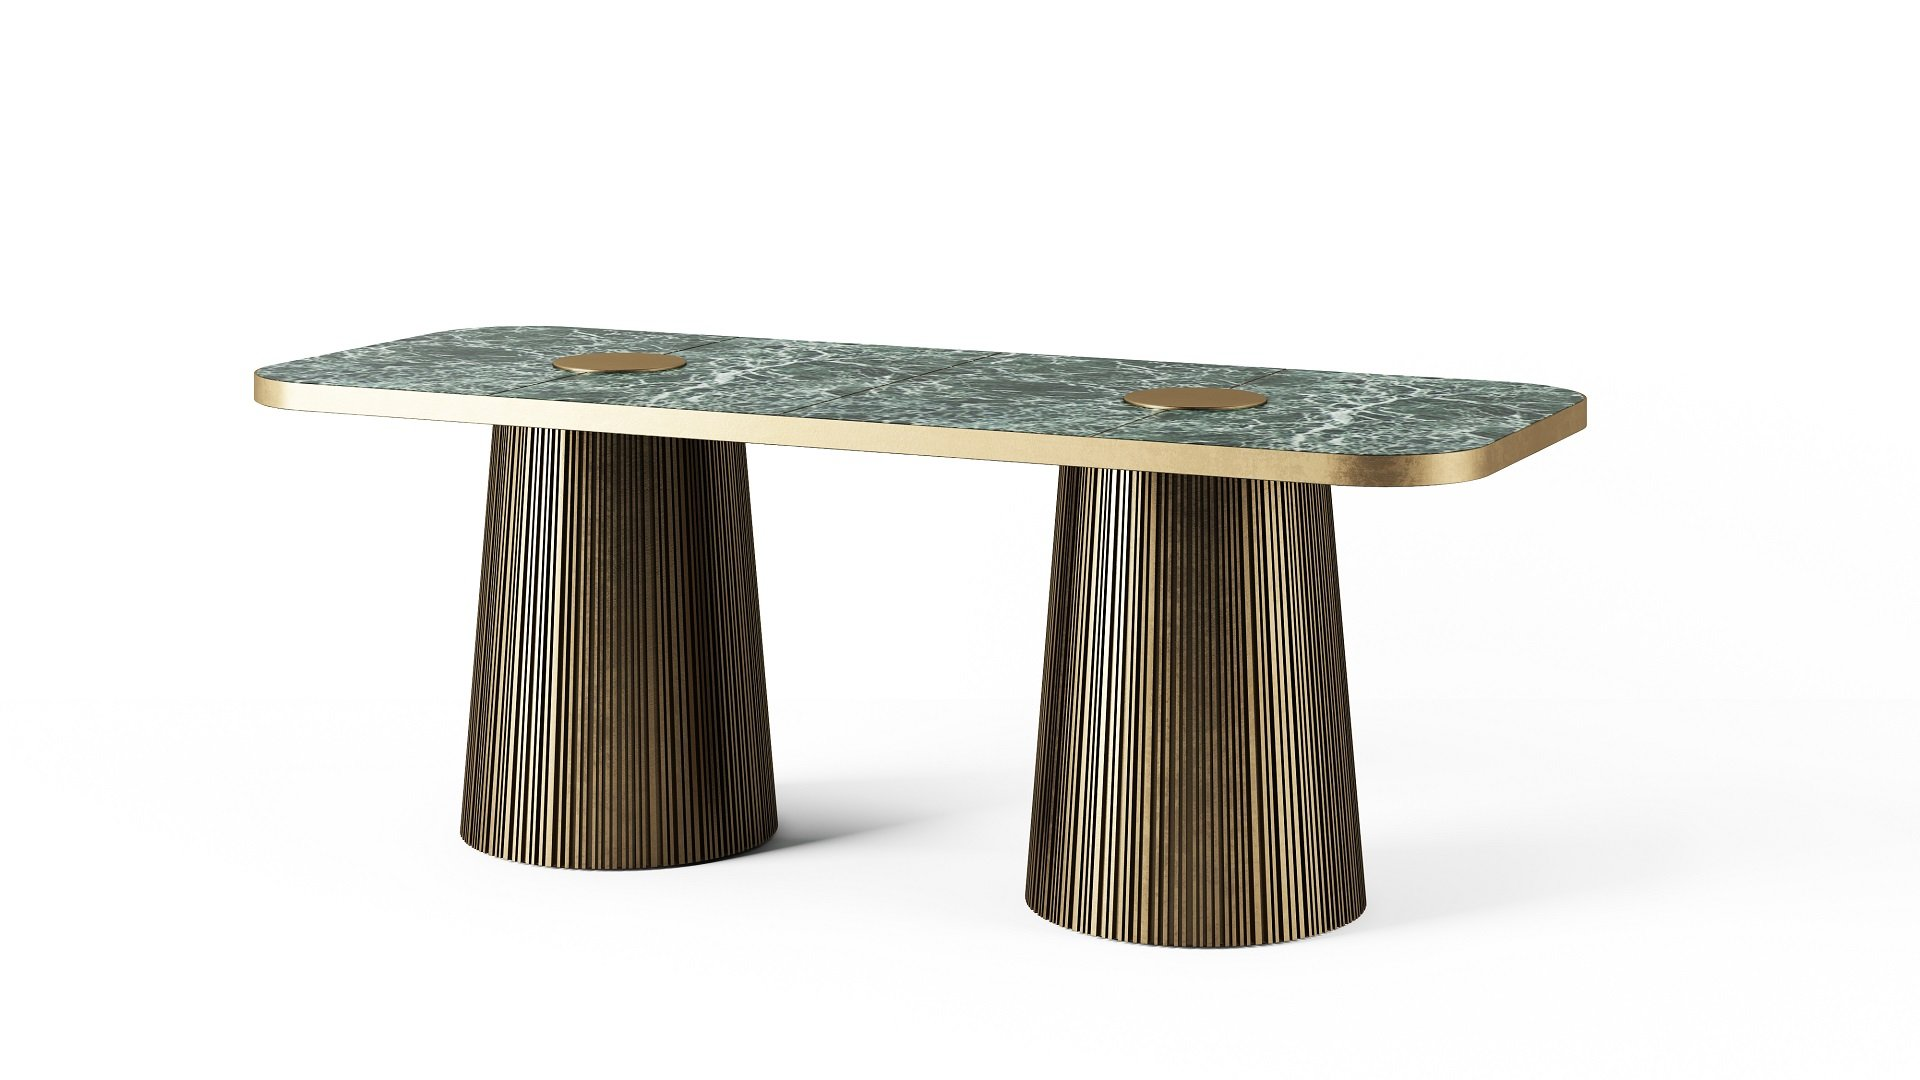 3D Visualization of a Table